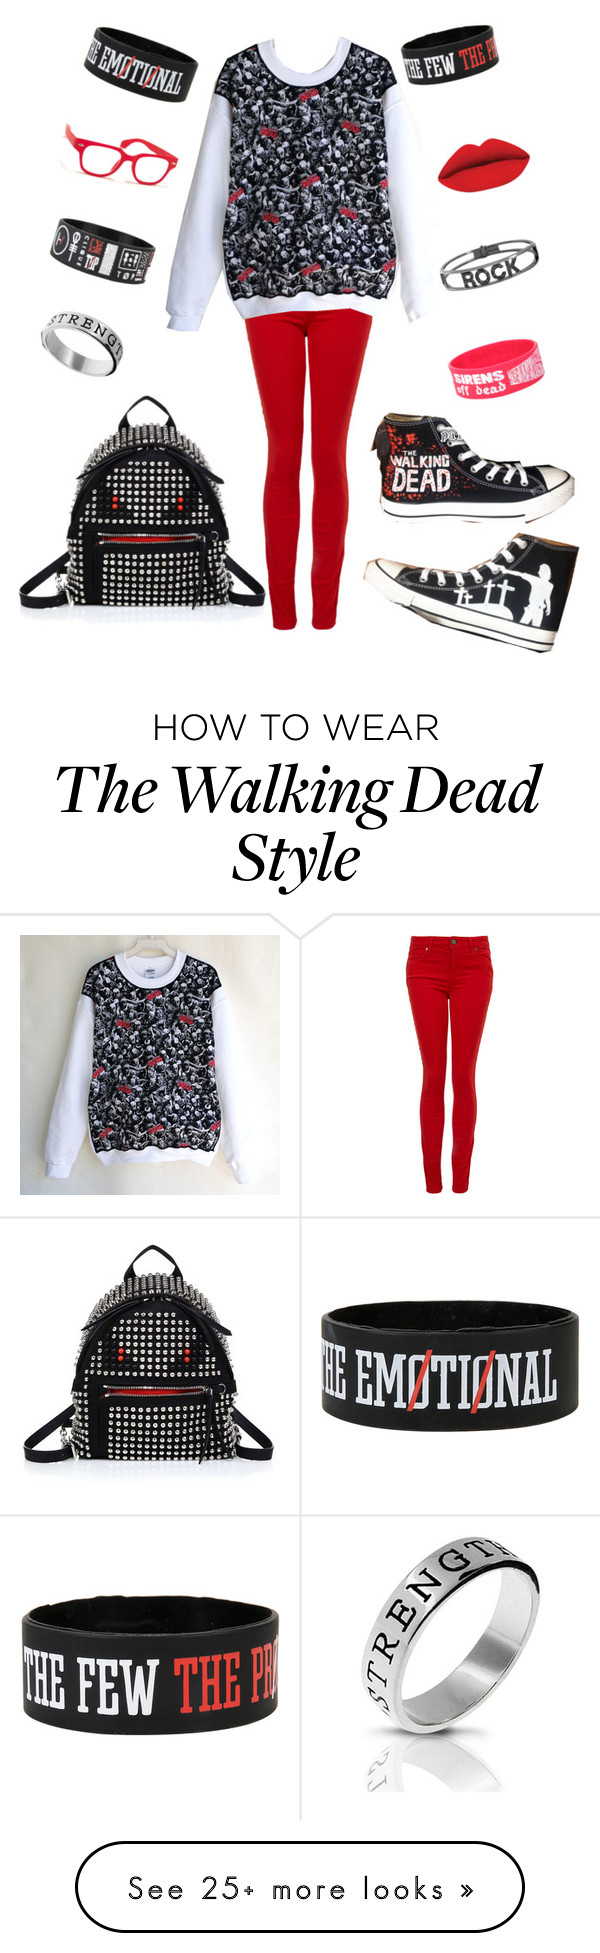 """""""School Style (TWD)"""" by galaxygirl12427 on Polyvore featuring Converse, Paige Denim, Spallanzani, A.J. Morgan, Bling Jewelry and Fendi"""